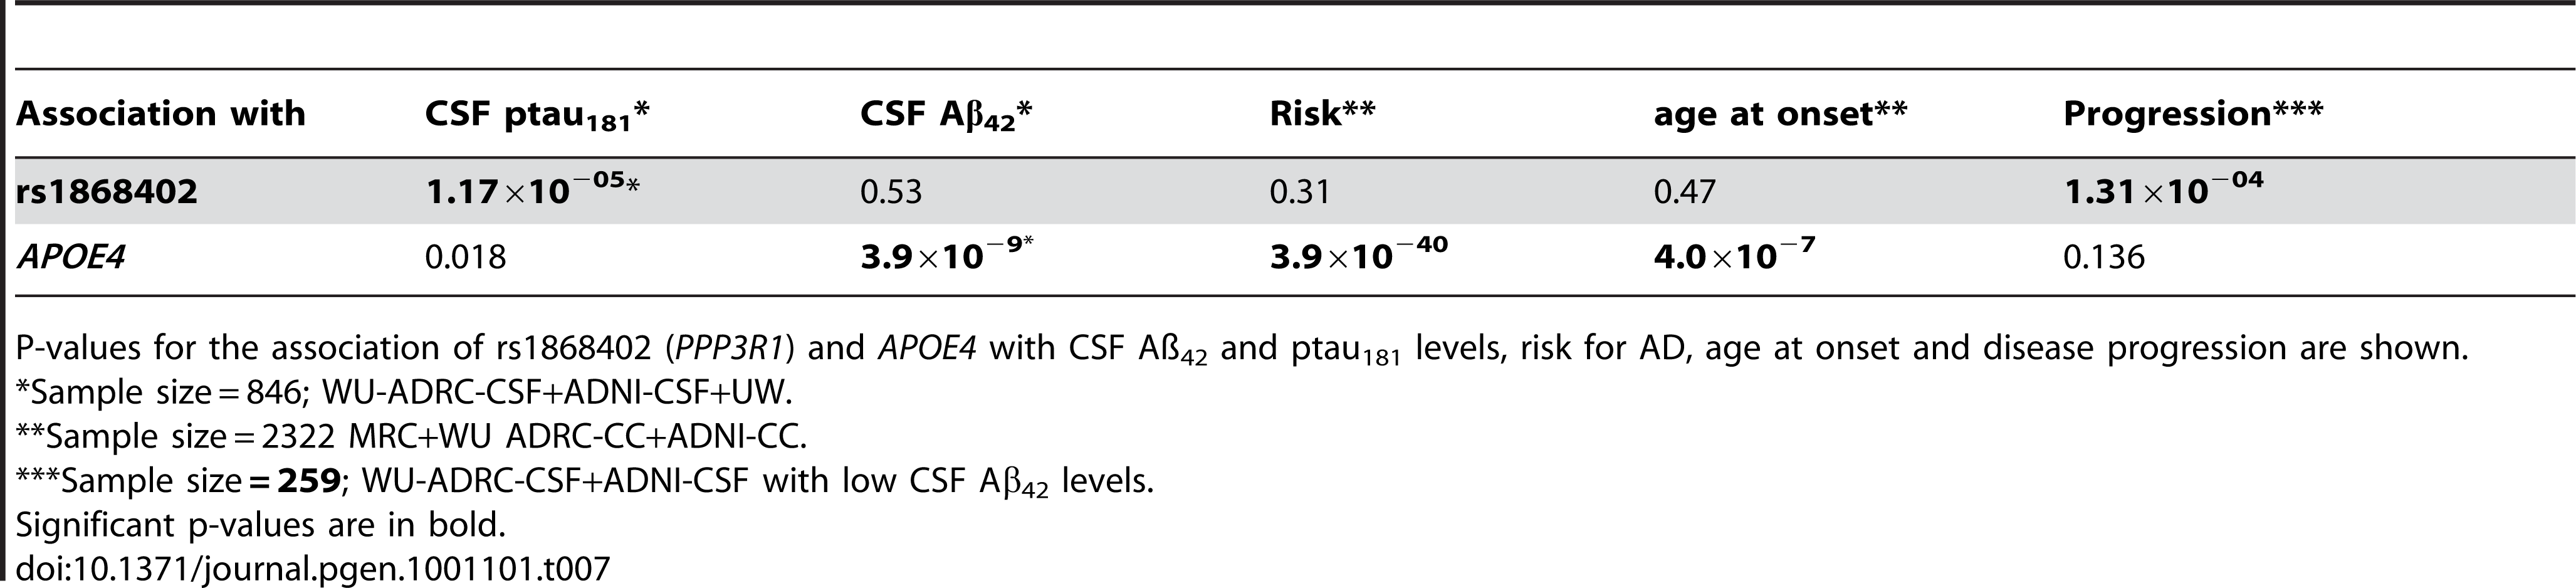 Variants that modify CSF Aβ<sub>42</sub> levels affect risk for AD, whereas variants associated with CSF ptau<sub>181</sub> levels affect rate of progression.